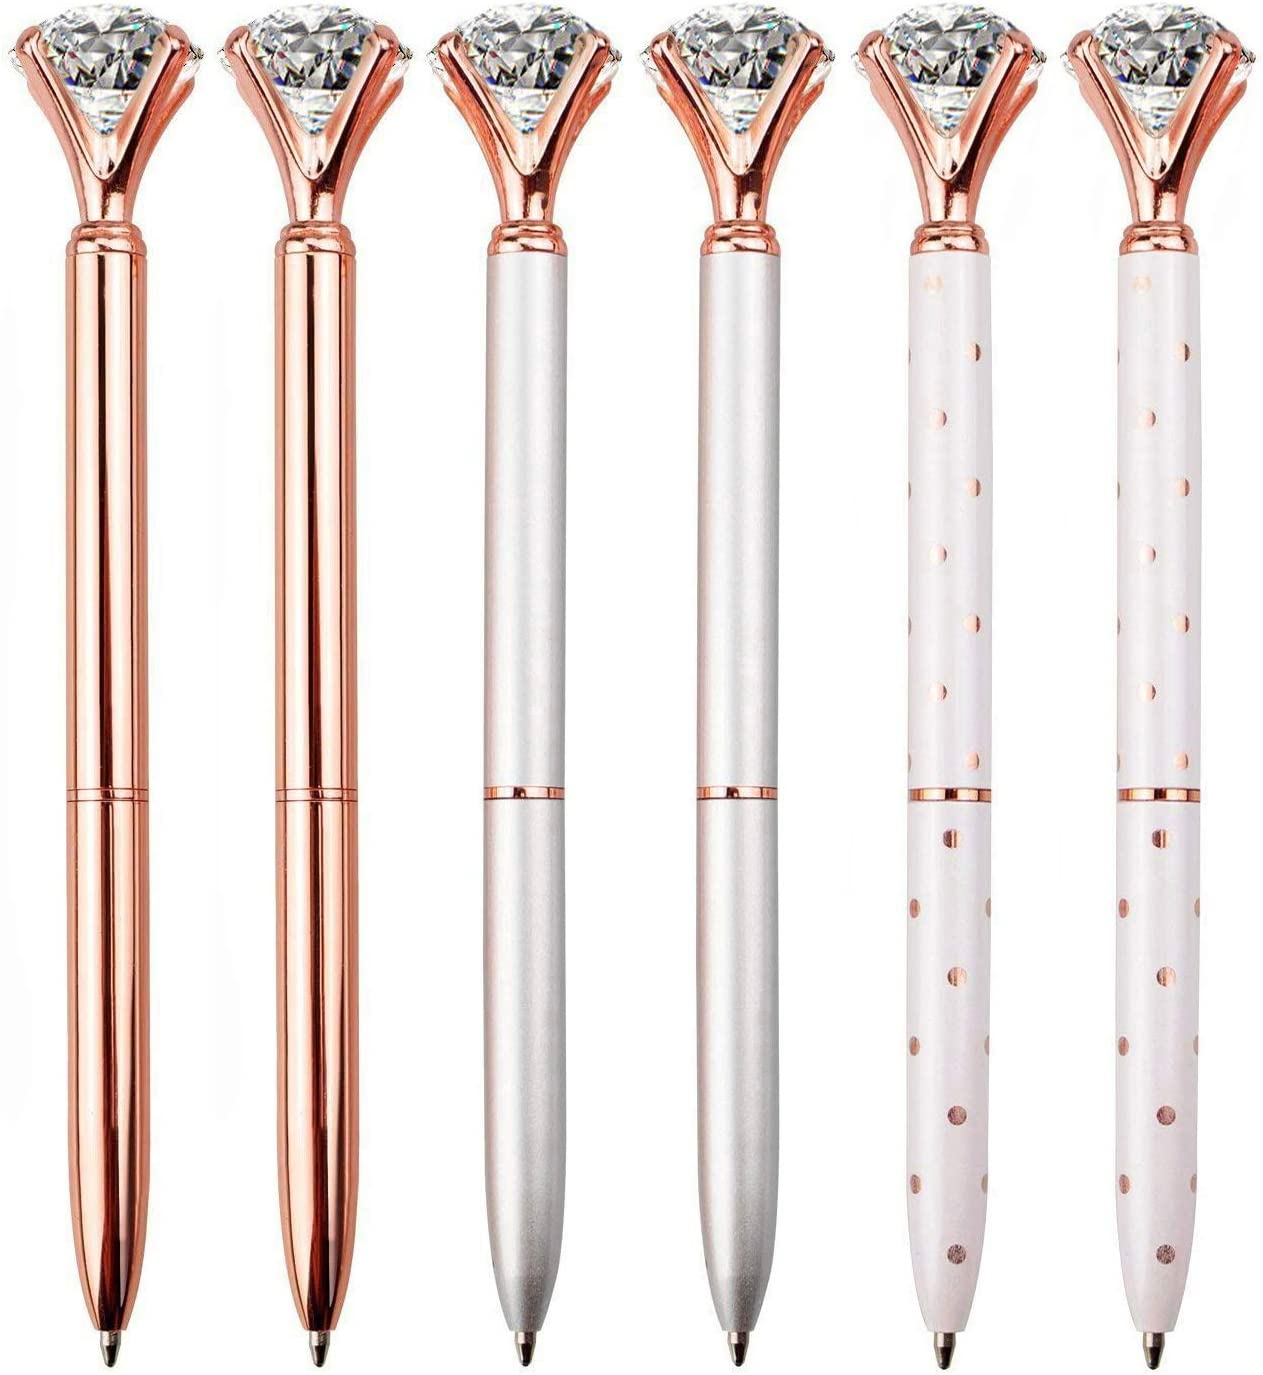 LONGKEY 6PCS Diamond Pens Large Crystal Diamond Ballpoint Pen Bling Metal Ballpoint Pen Office and School, Silver / White Rose Polka Dot / Rose Gold, Including 6Pen Refills.